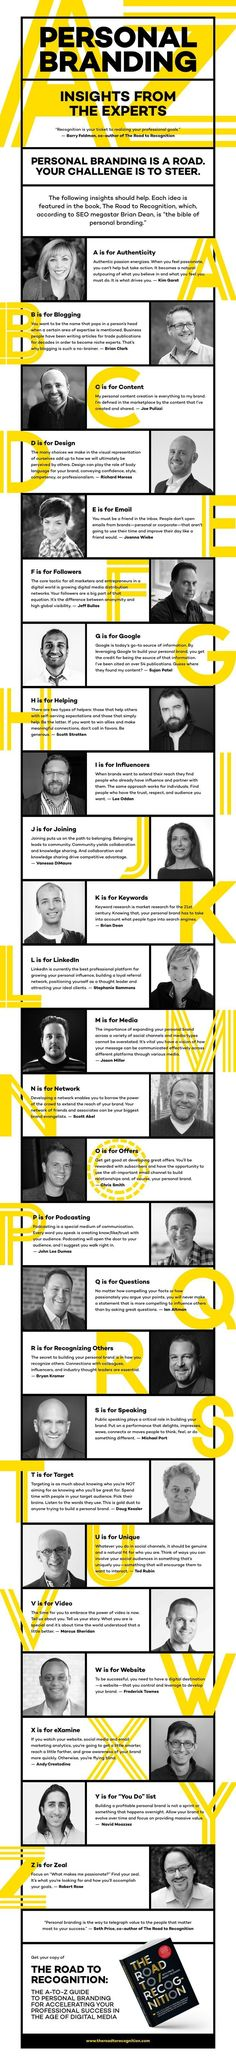 Personal Branding Tips from 28 Experts [Infographic] | Social Media Today